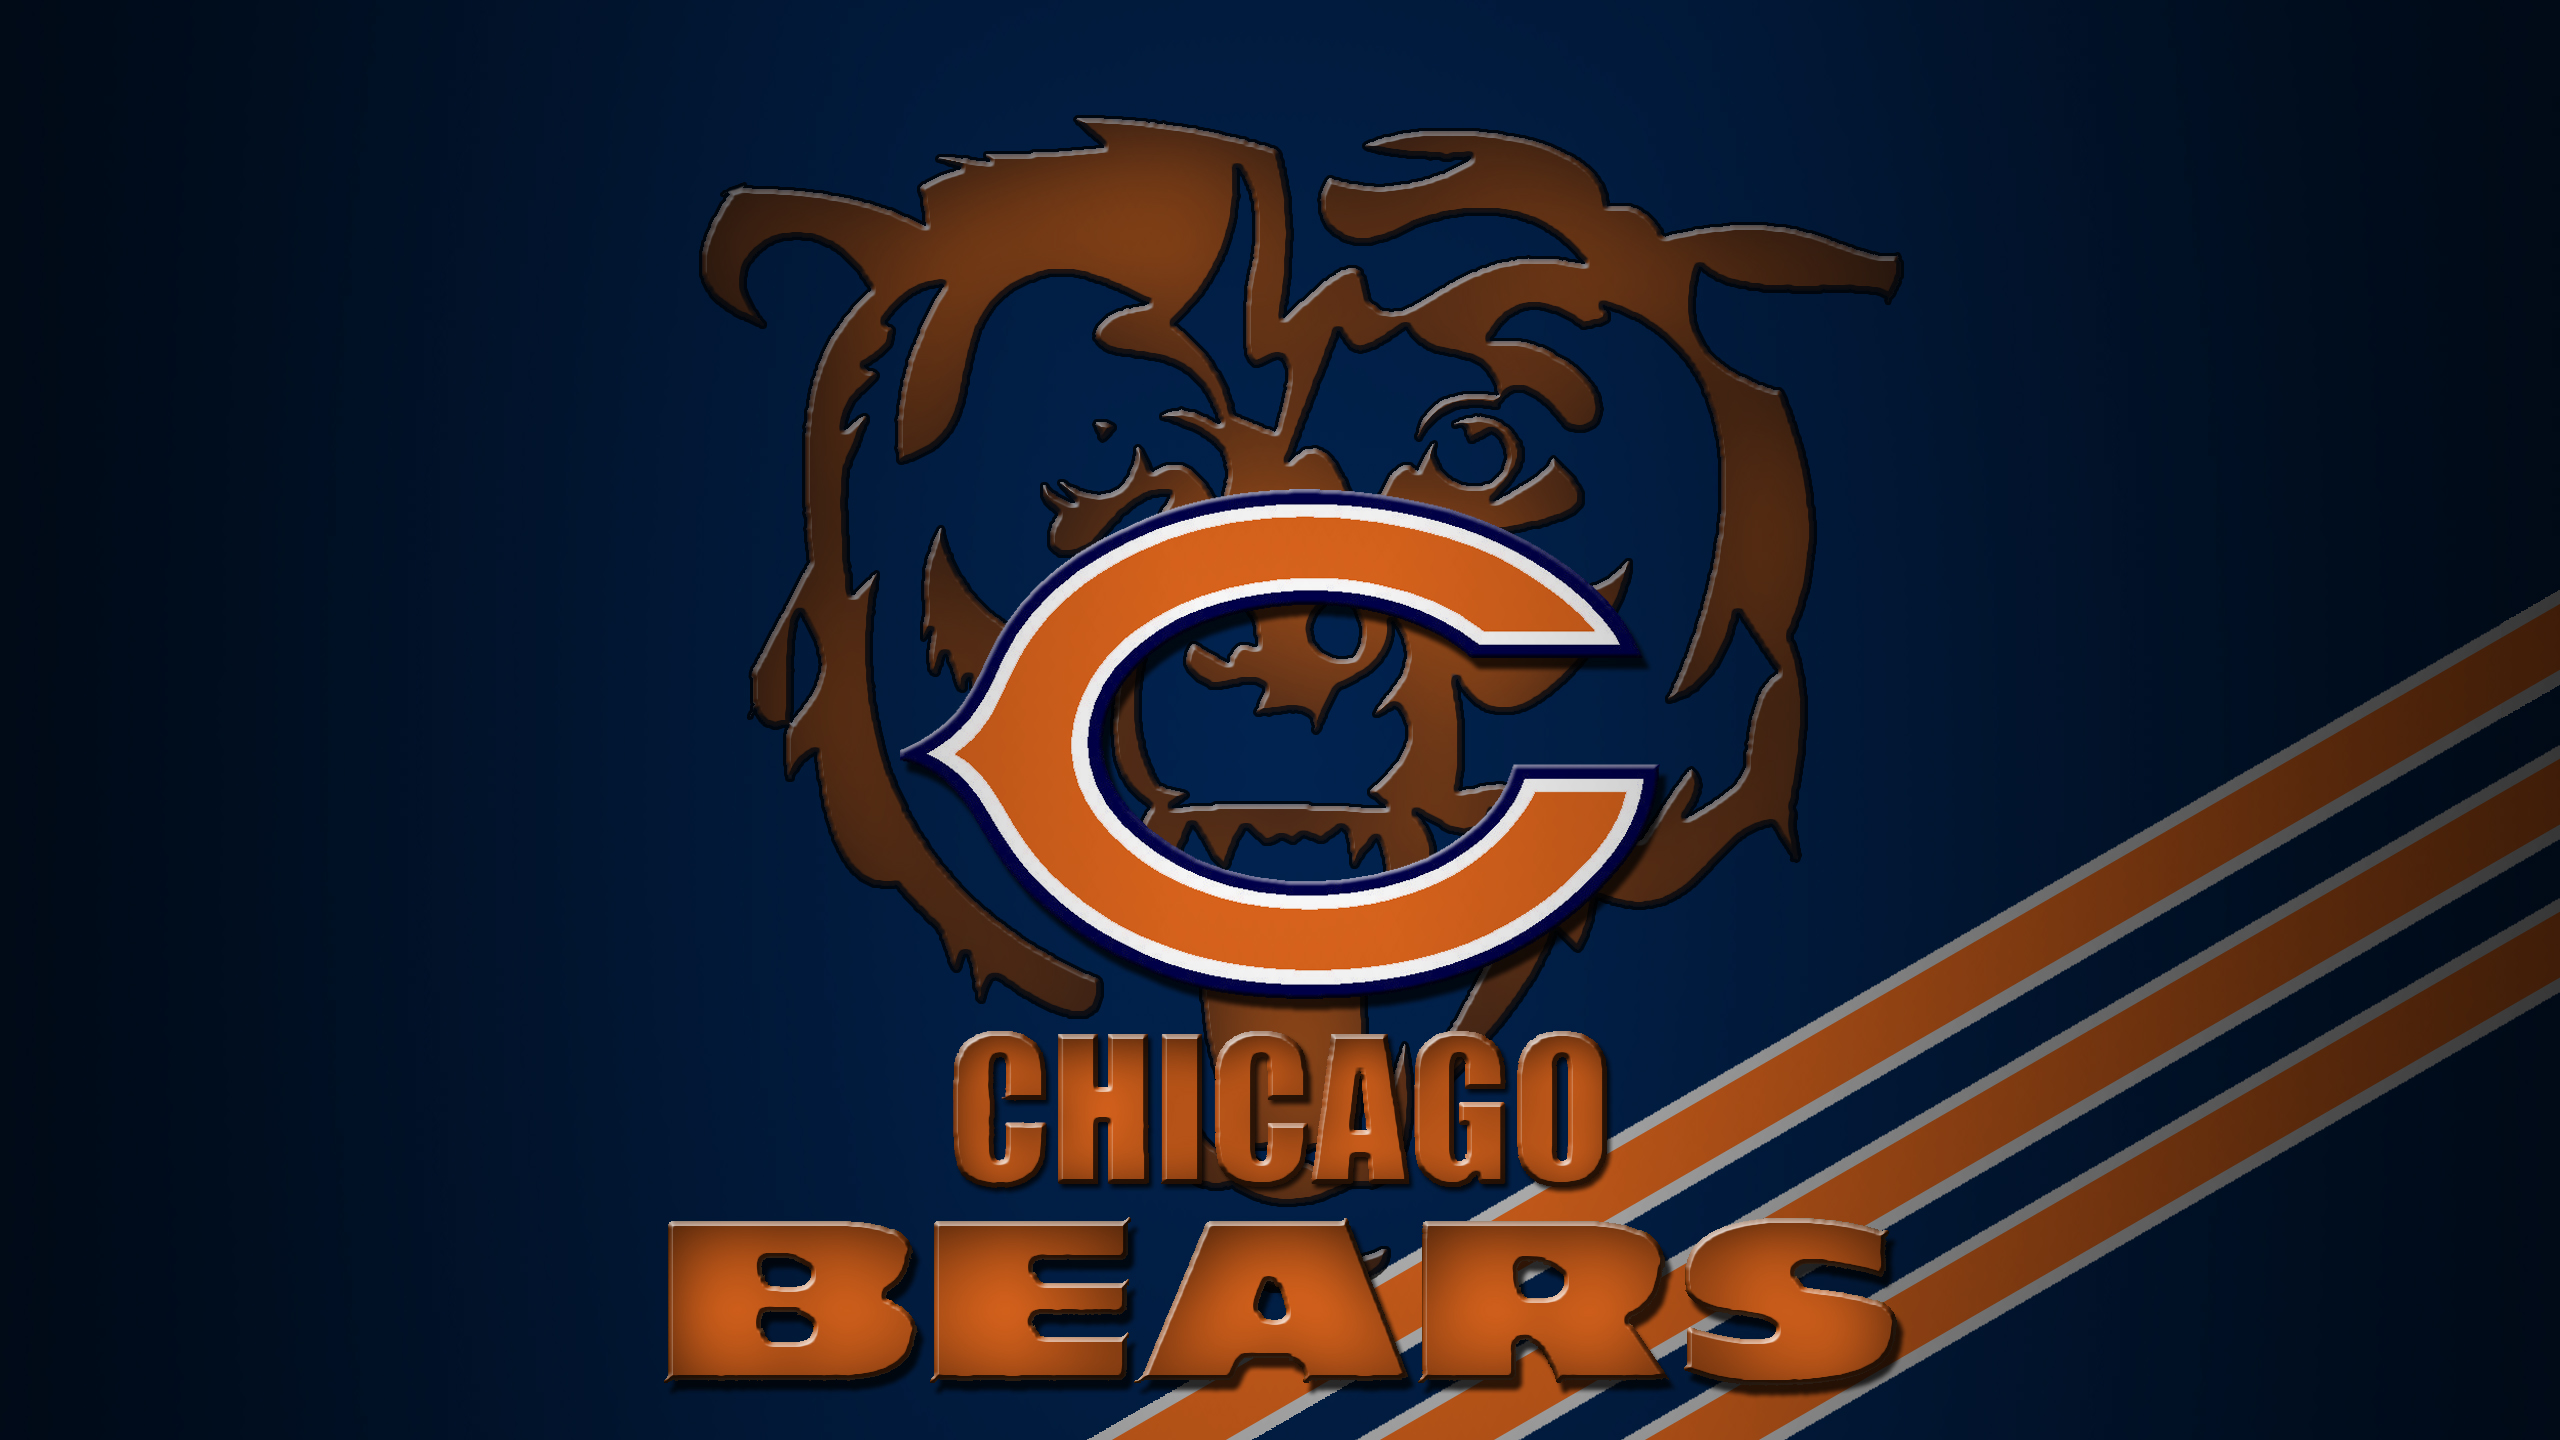 2560x1440 - Chicago Bears Wallpapers 11